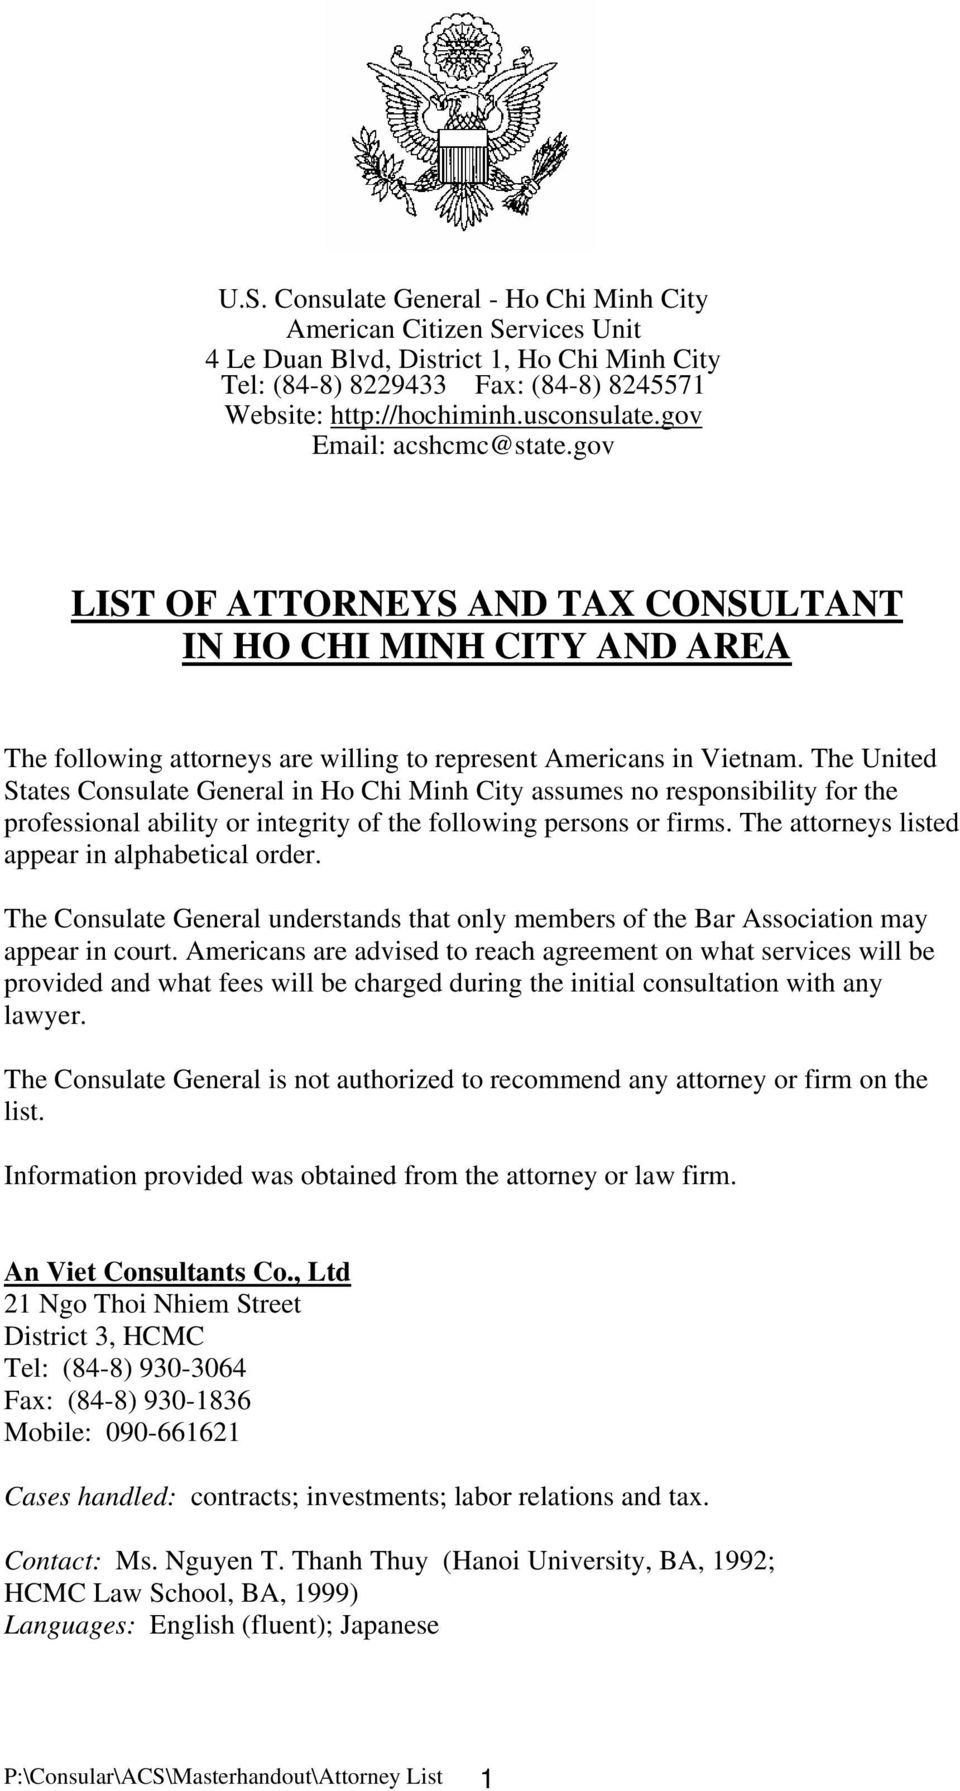 The United States Consulate General in Ho Chi Minh City assumes no responsibility for the professional ability or integrity of the following persons or firms.